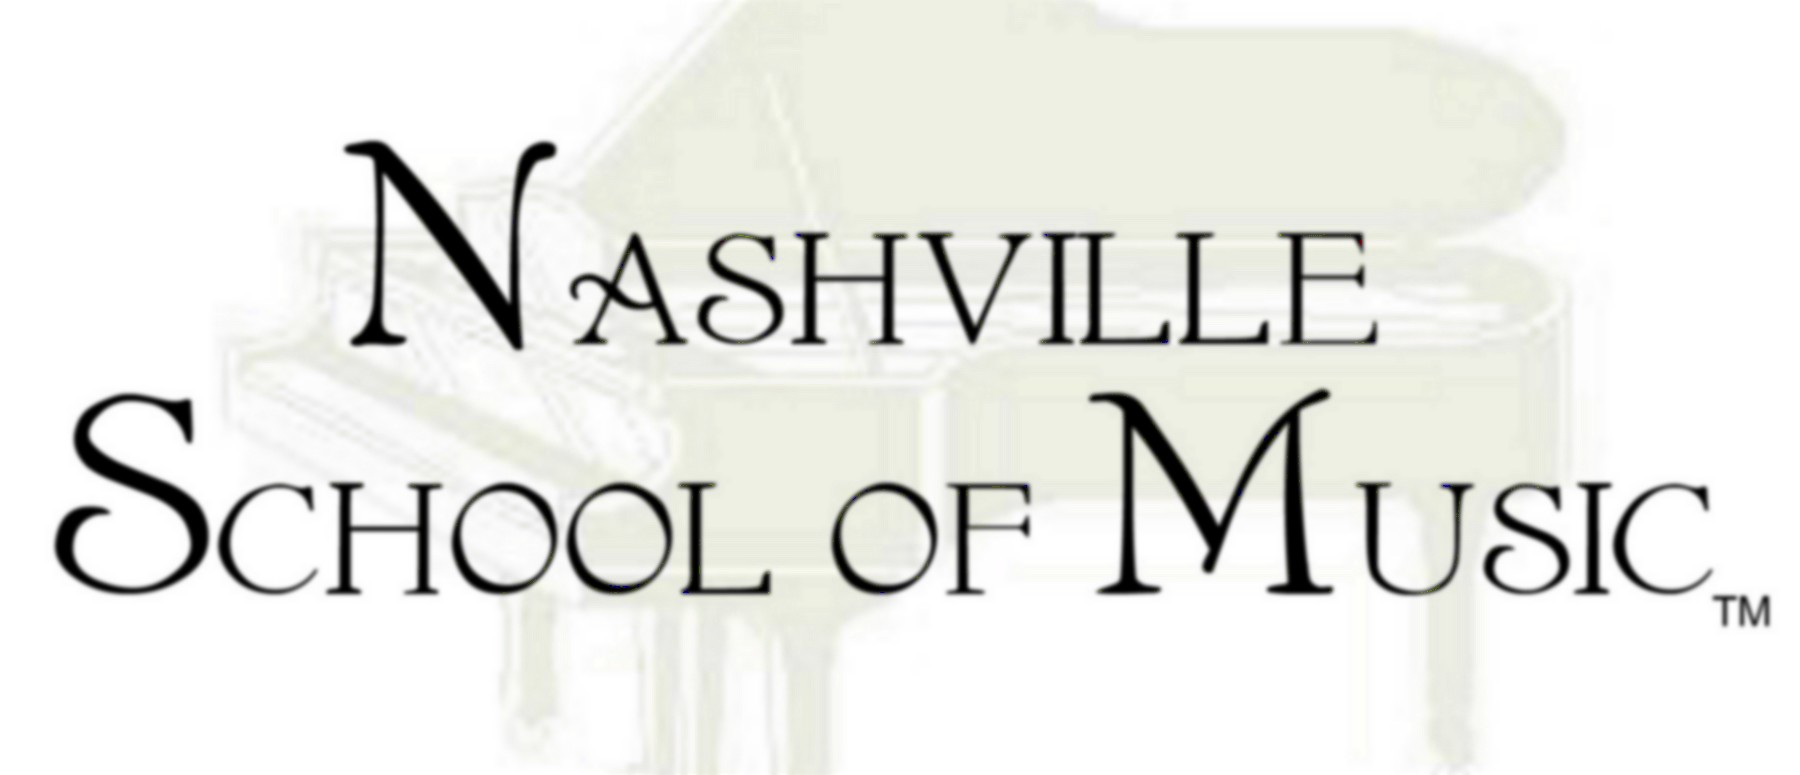 Nashville School of Music logo